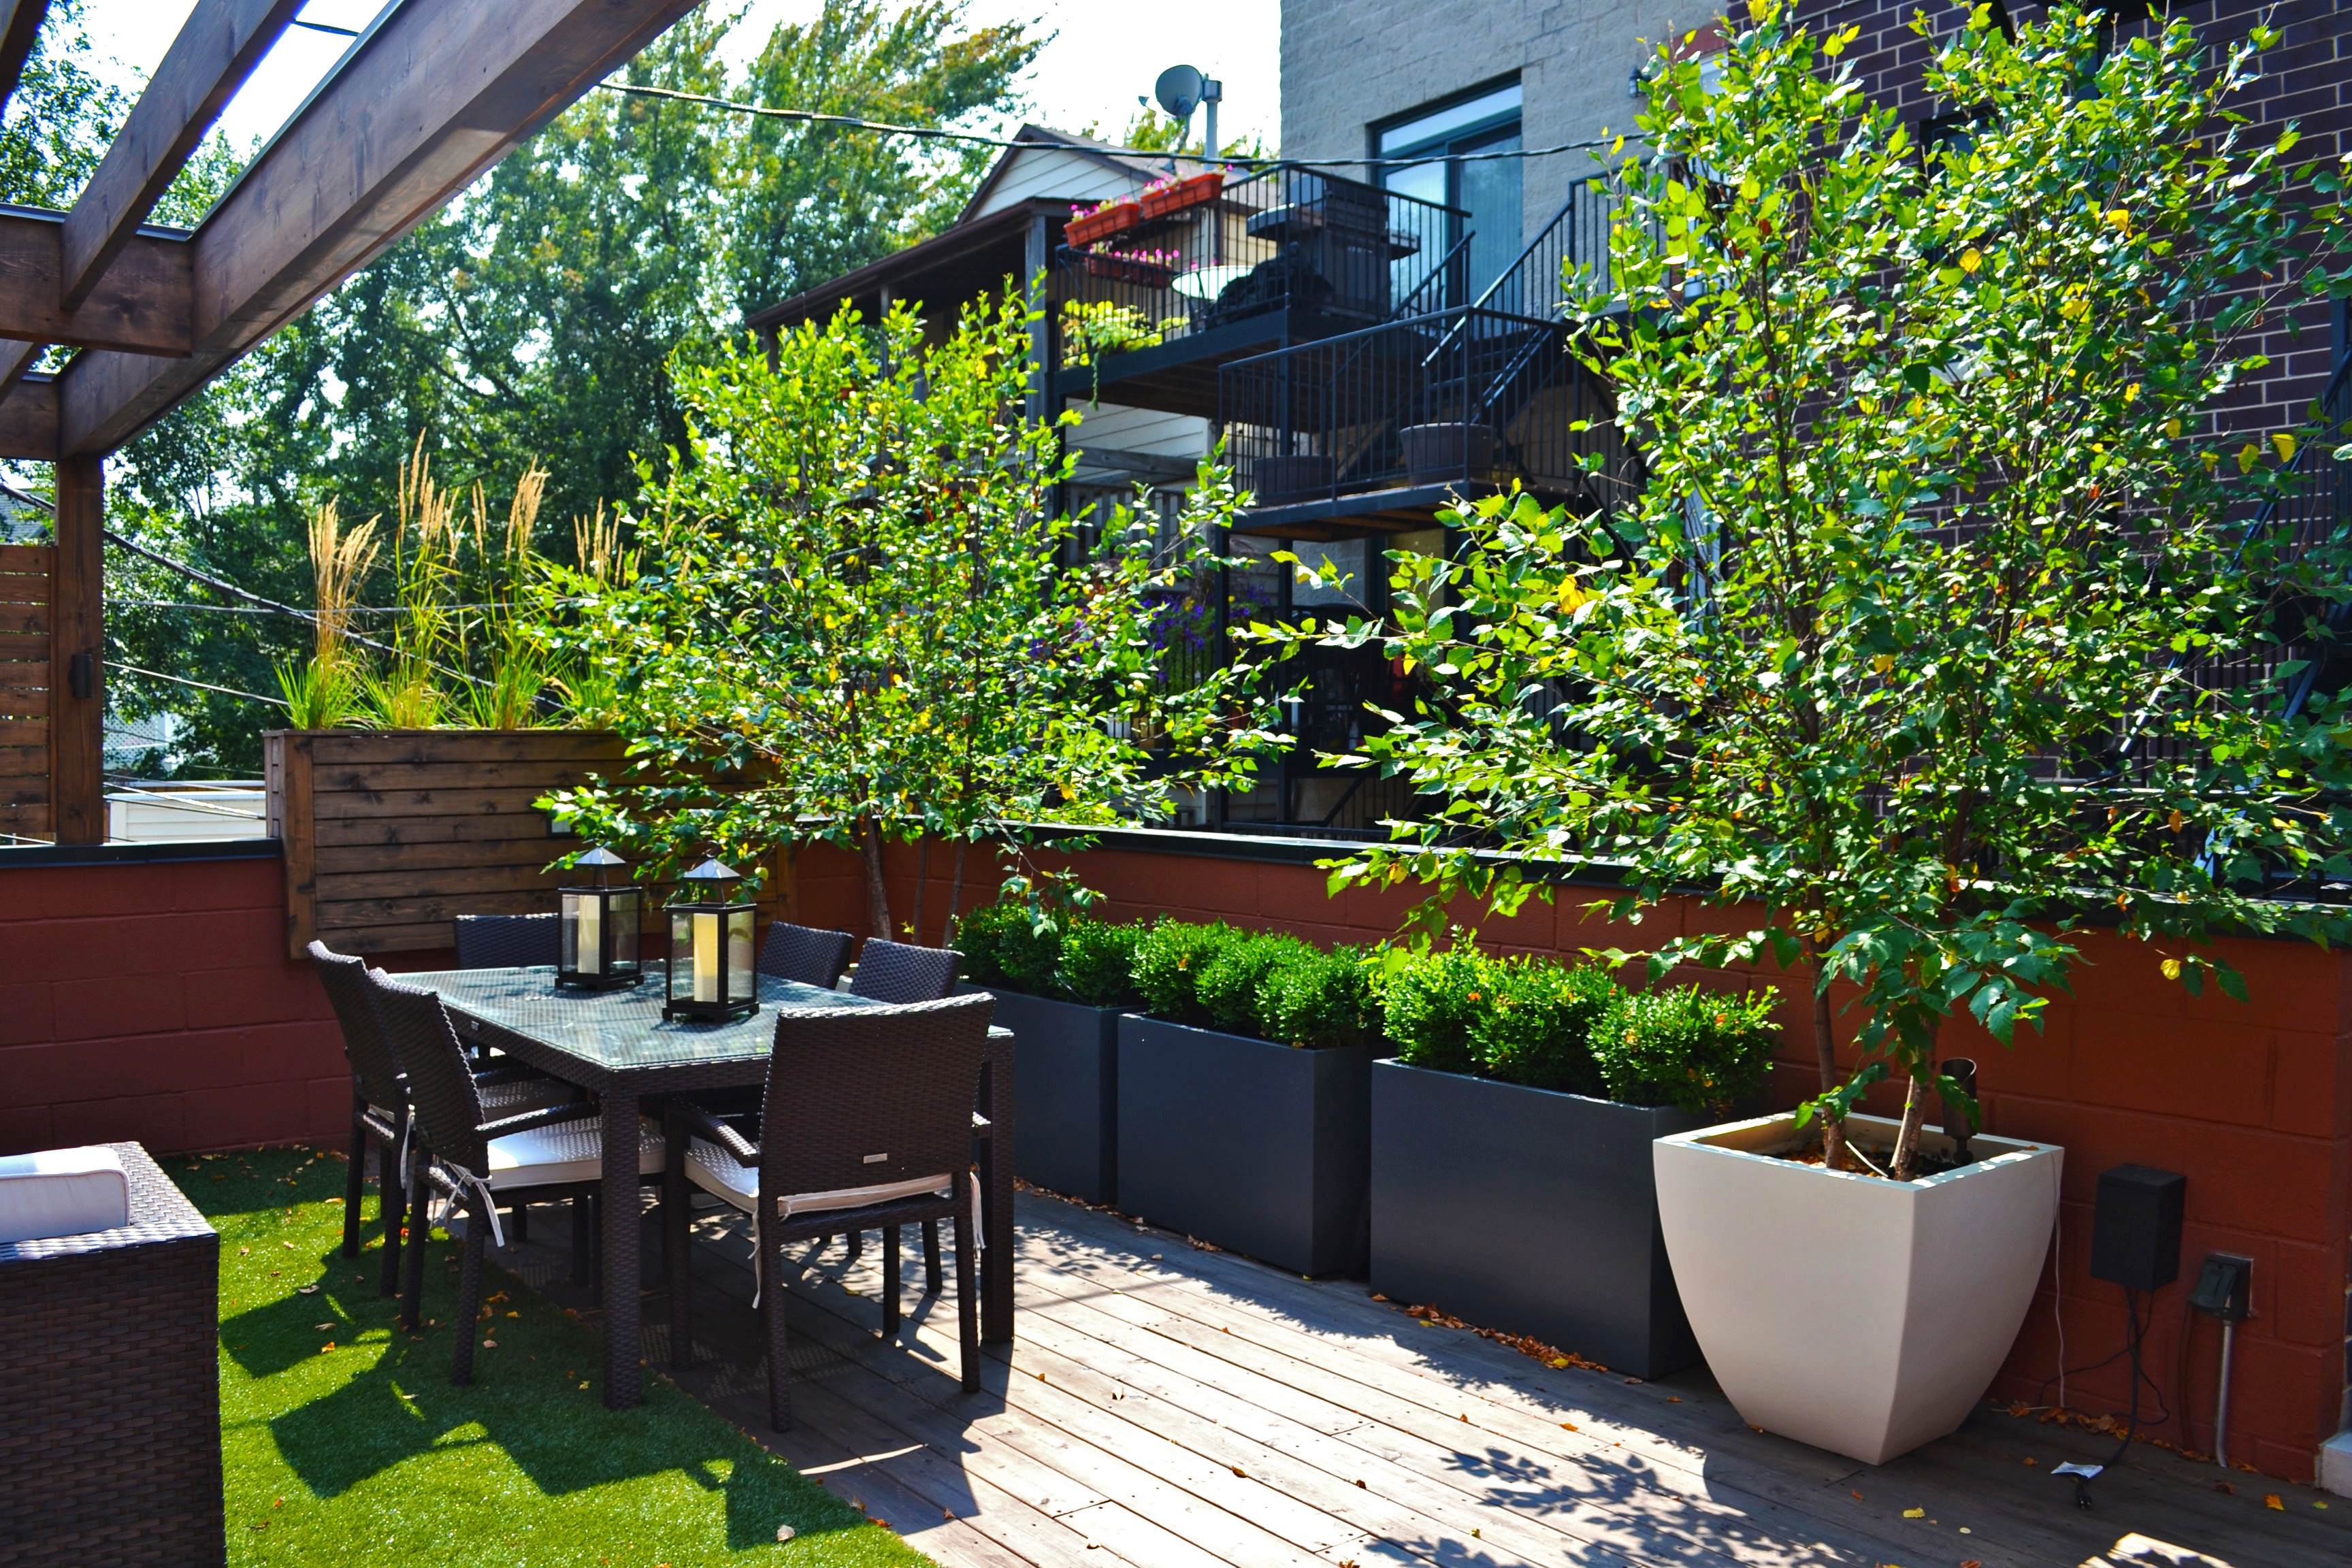 Low Maintenance Landscaping Rooftop Deck Garden And Patio (View 13 of 30)